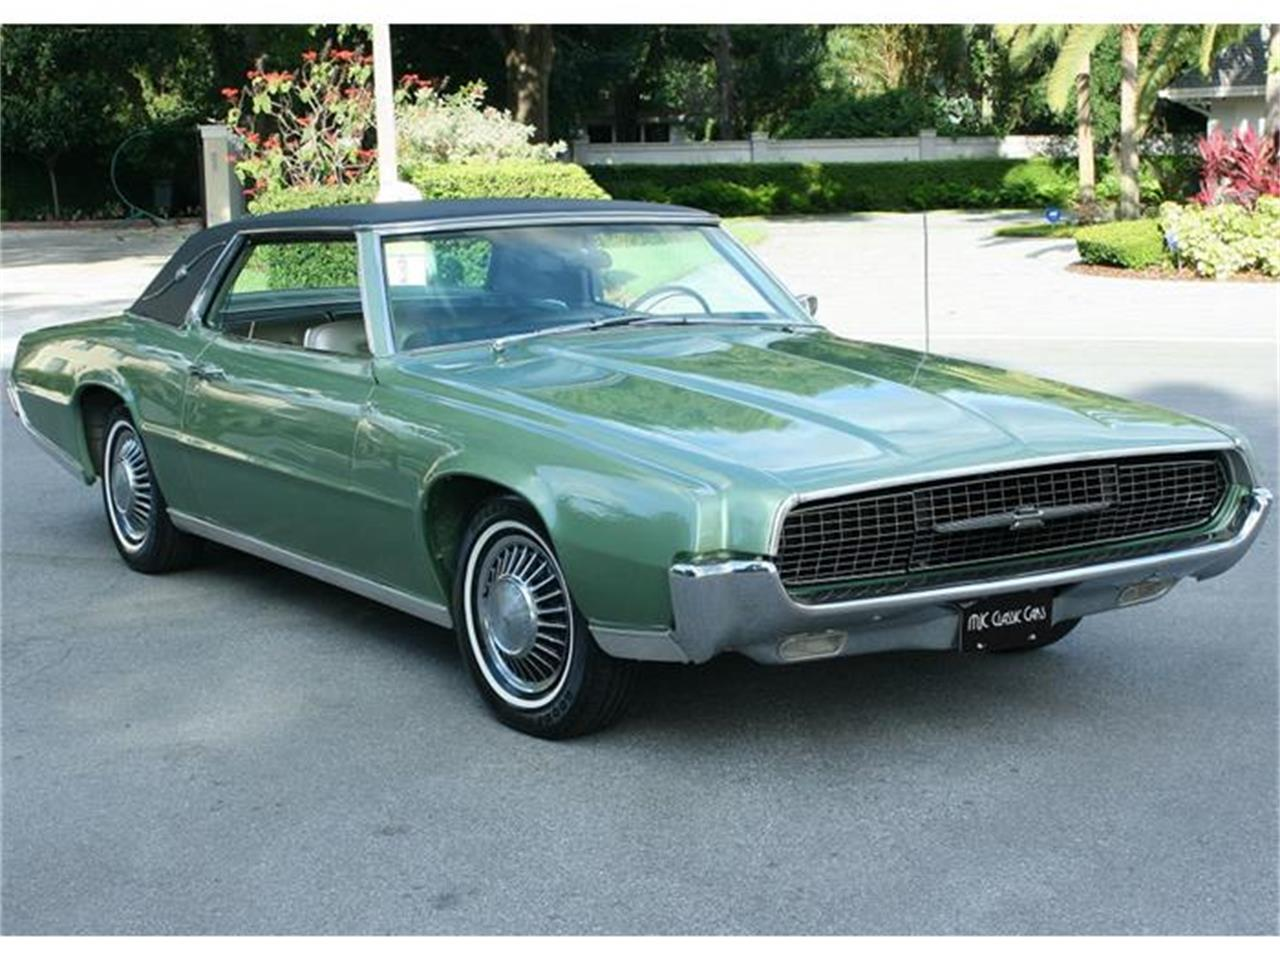 Large Picture of Classic 1967 Ford Thunderbird located in Florida - $18,500.00 Offered by MJC Classic Cars - ITN1